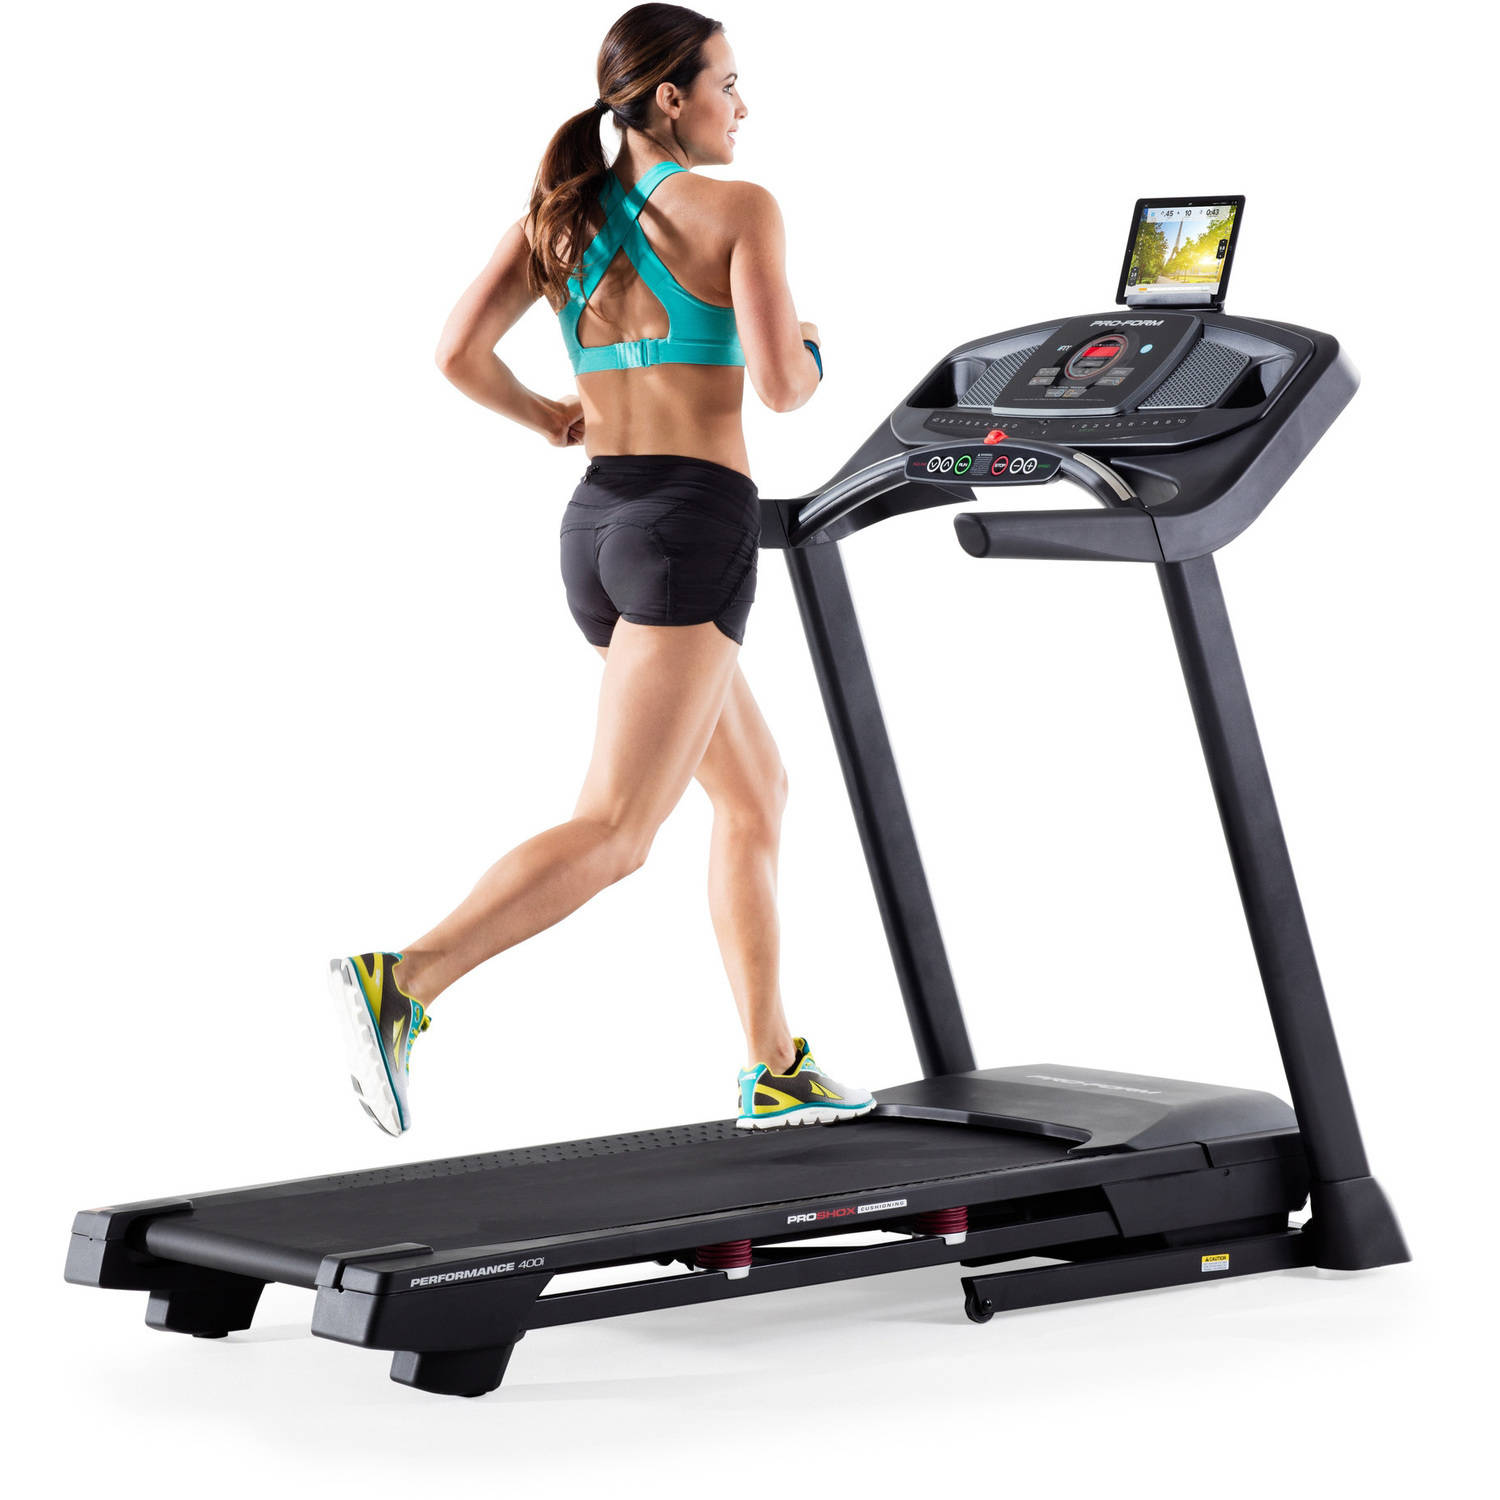 ProForm Performance 400i Treadmill, Powered by iFit